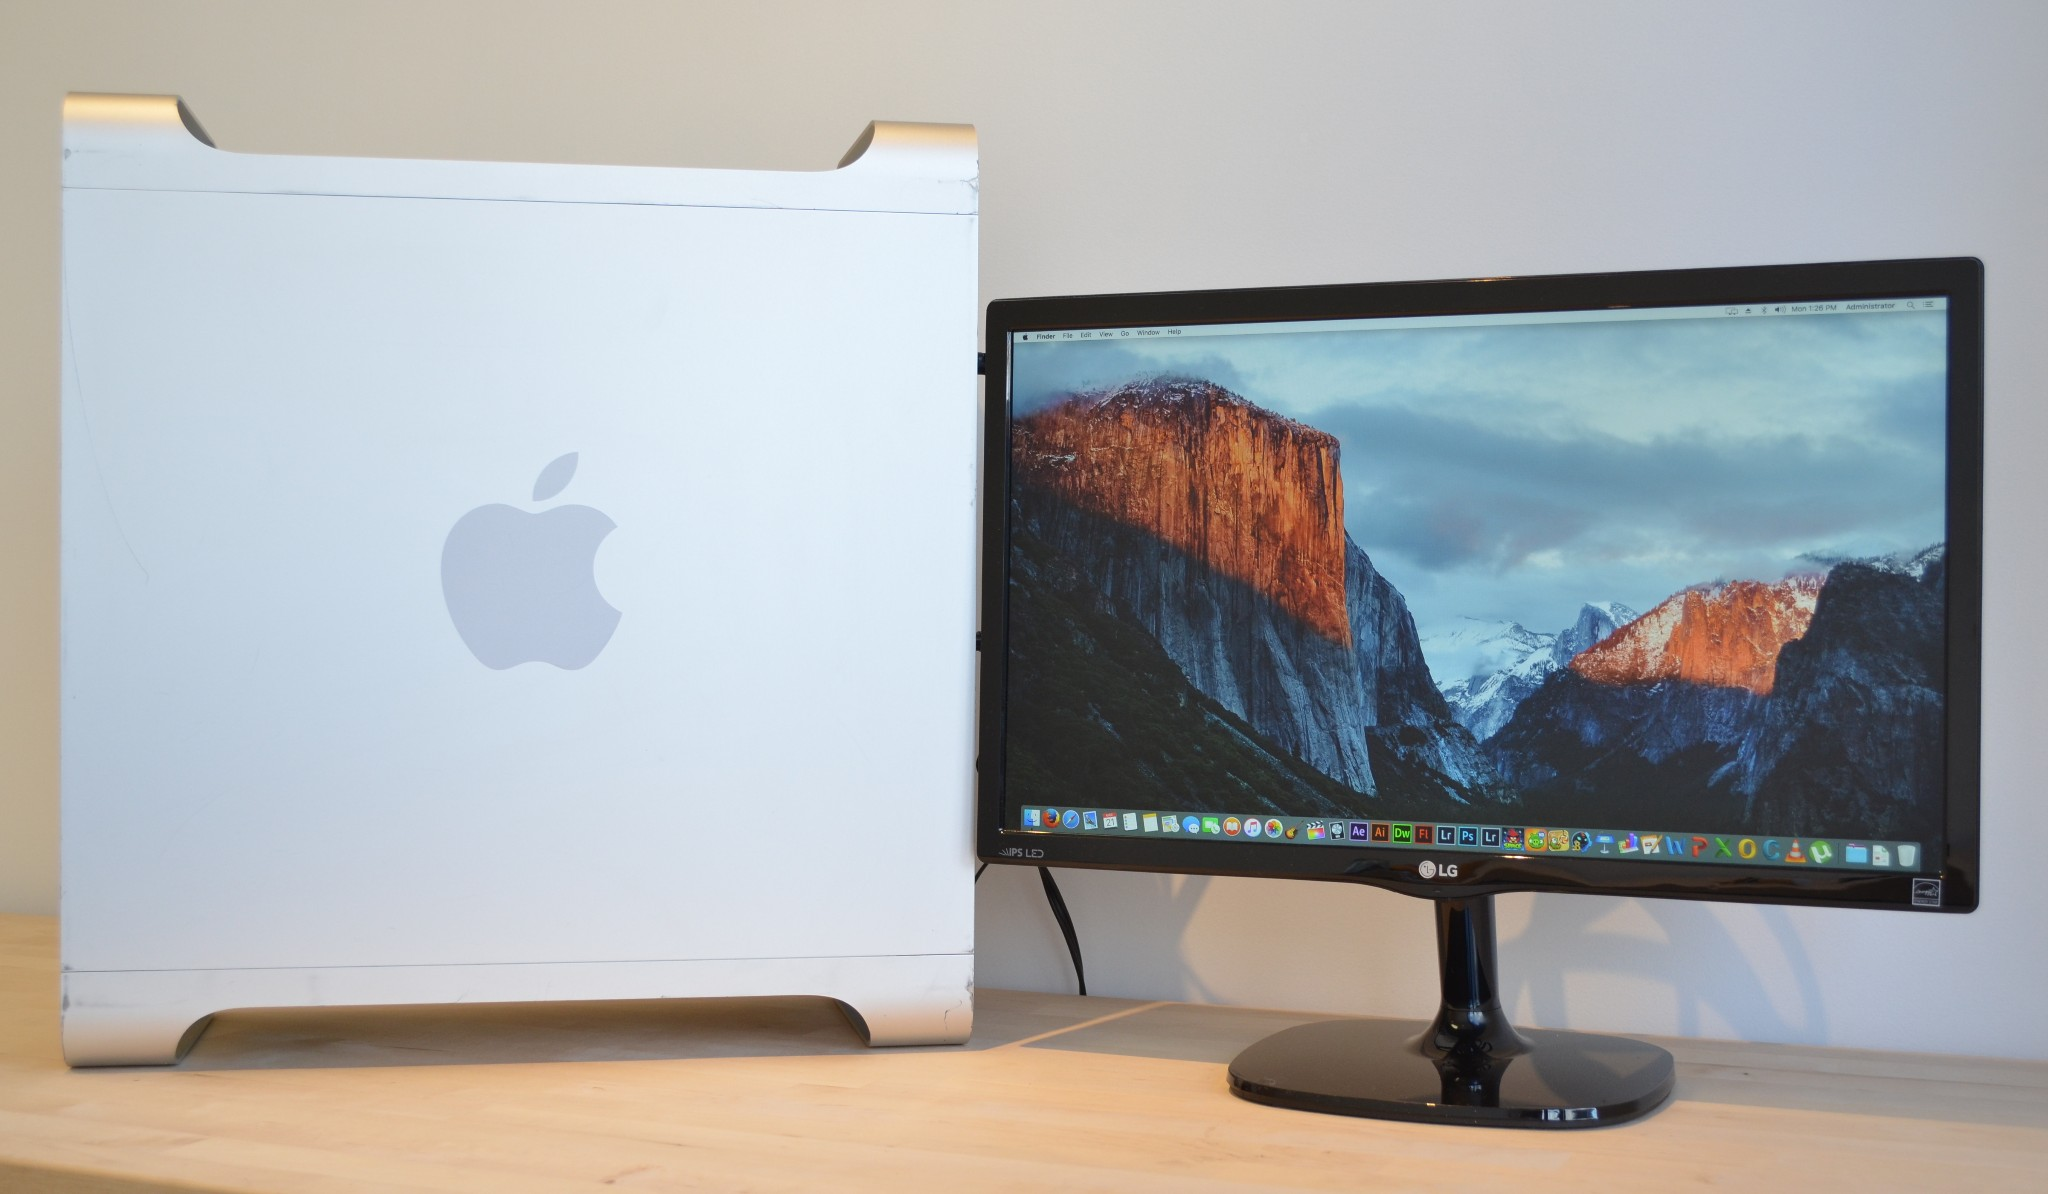 Details about Apple Mac Pro - 6 Core 3 3GHz - 2TB - 32GB RAM - 1 Year Wty   - MacOS High Sierra